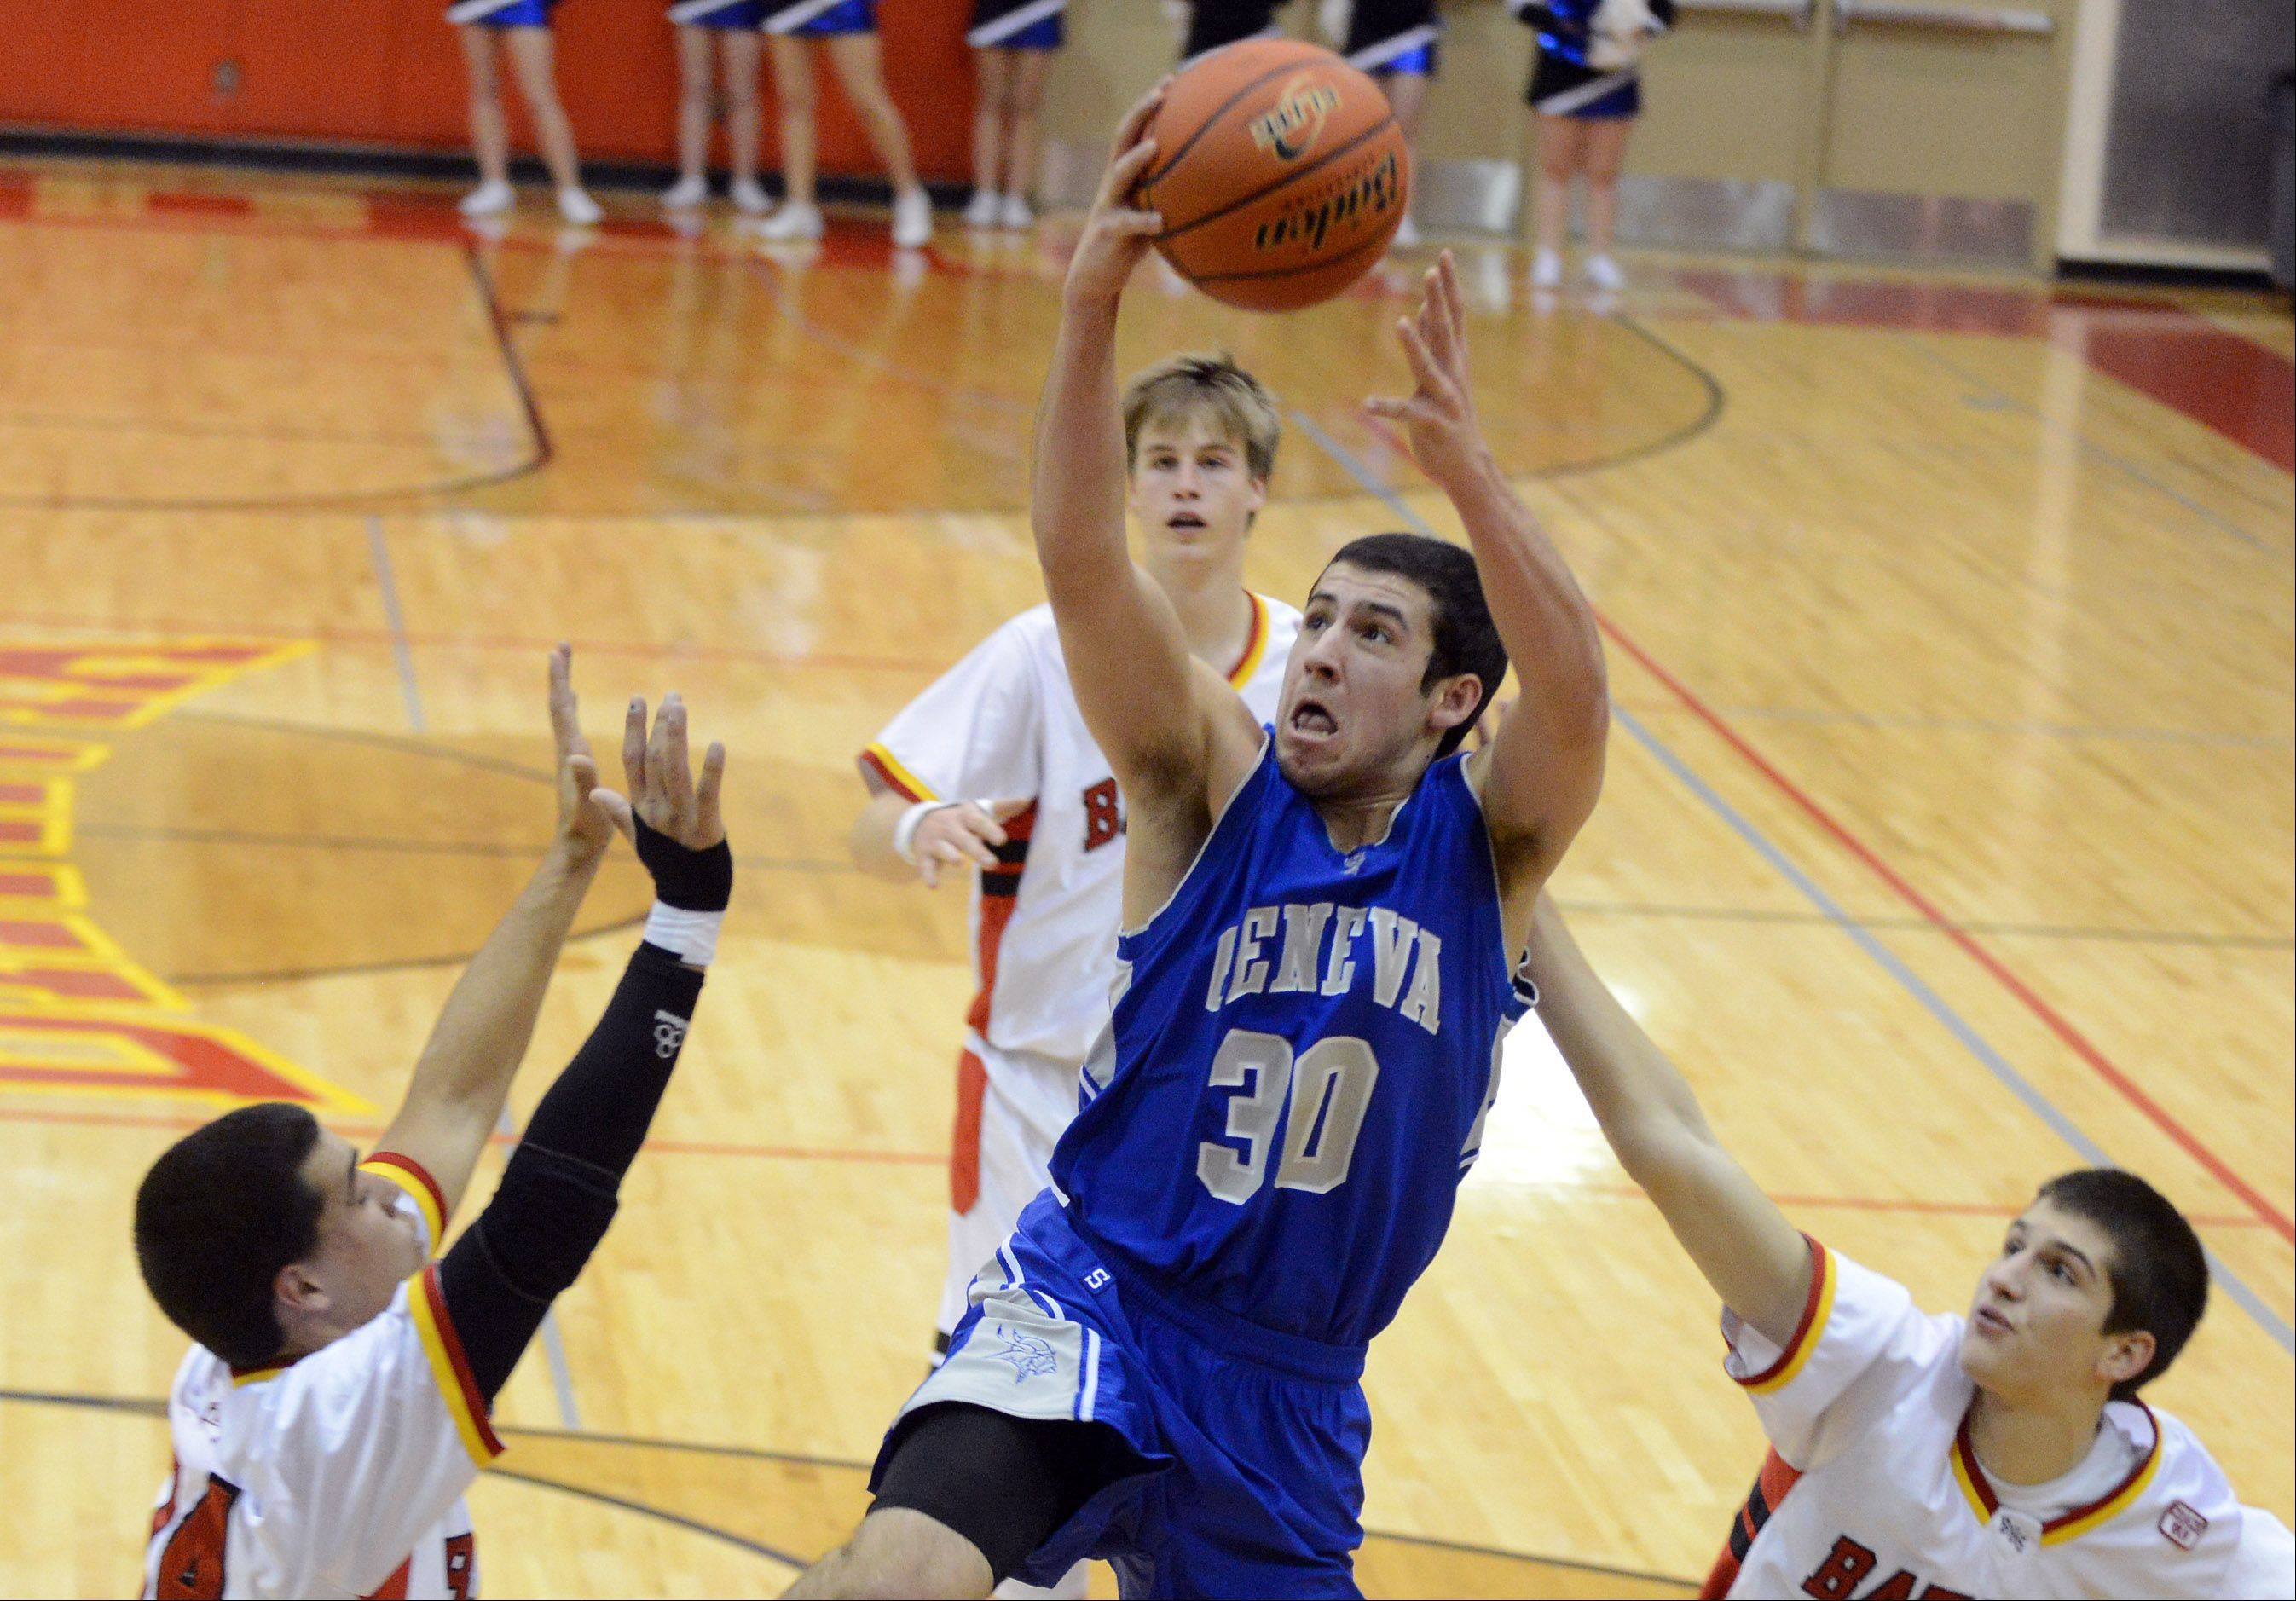 Chris Parrilli helped Geneva win the tournament title at East Aurora.